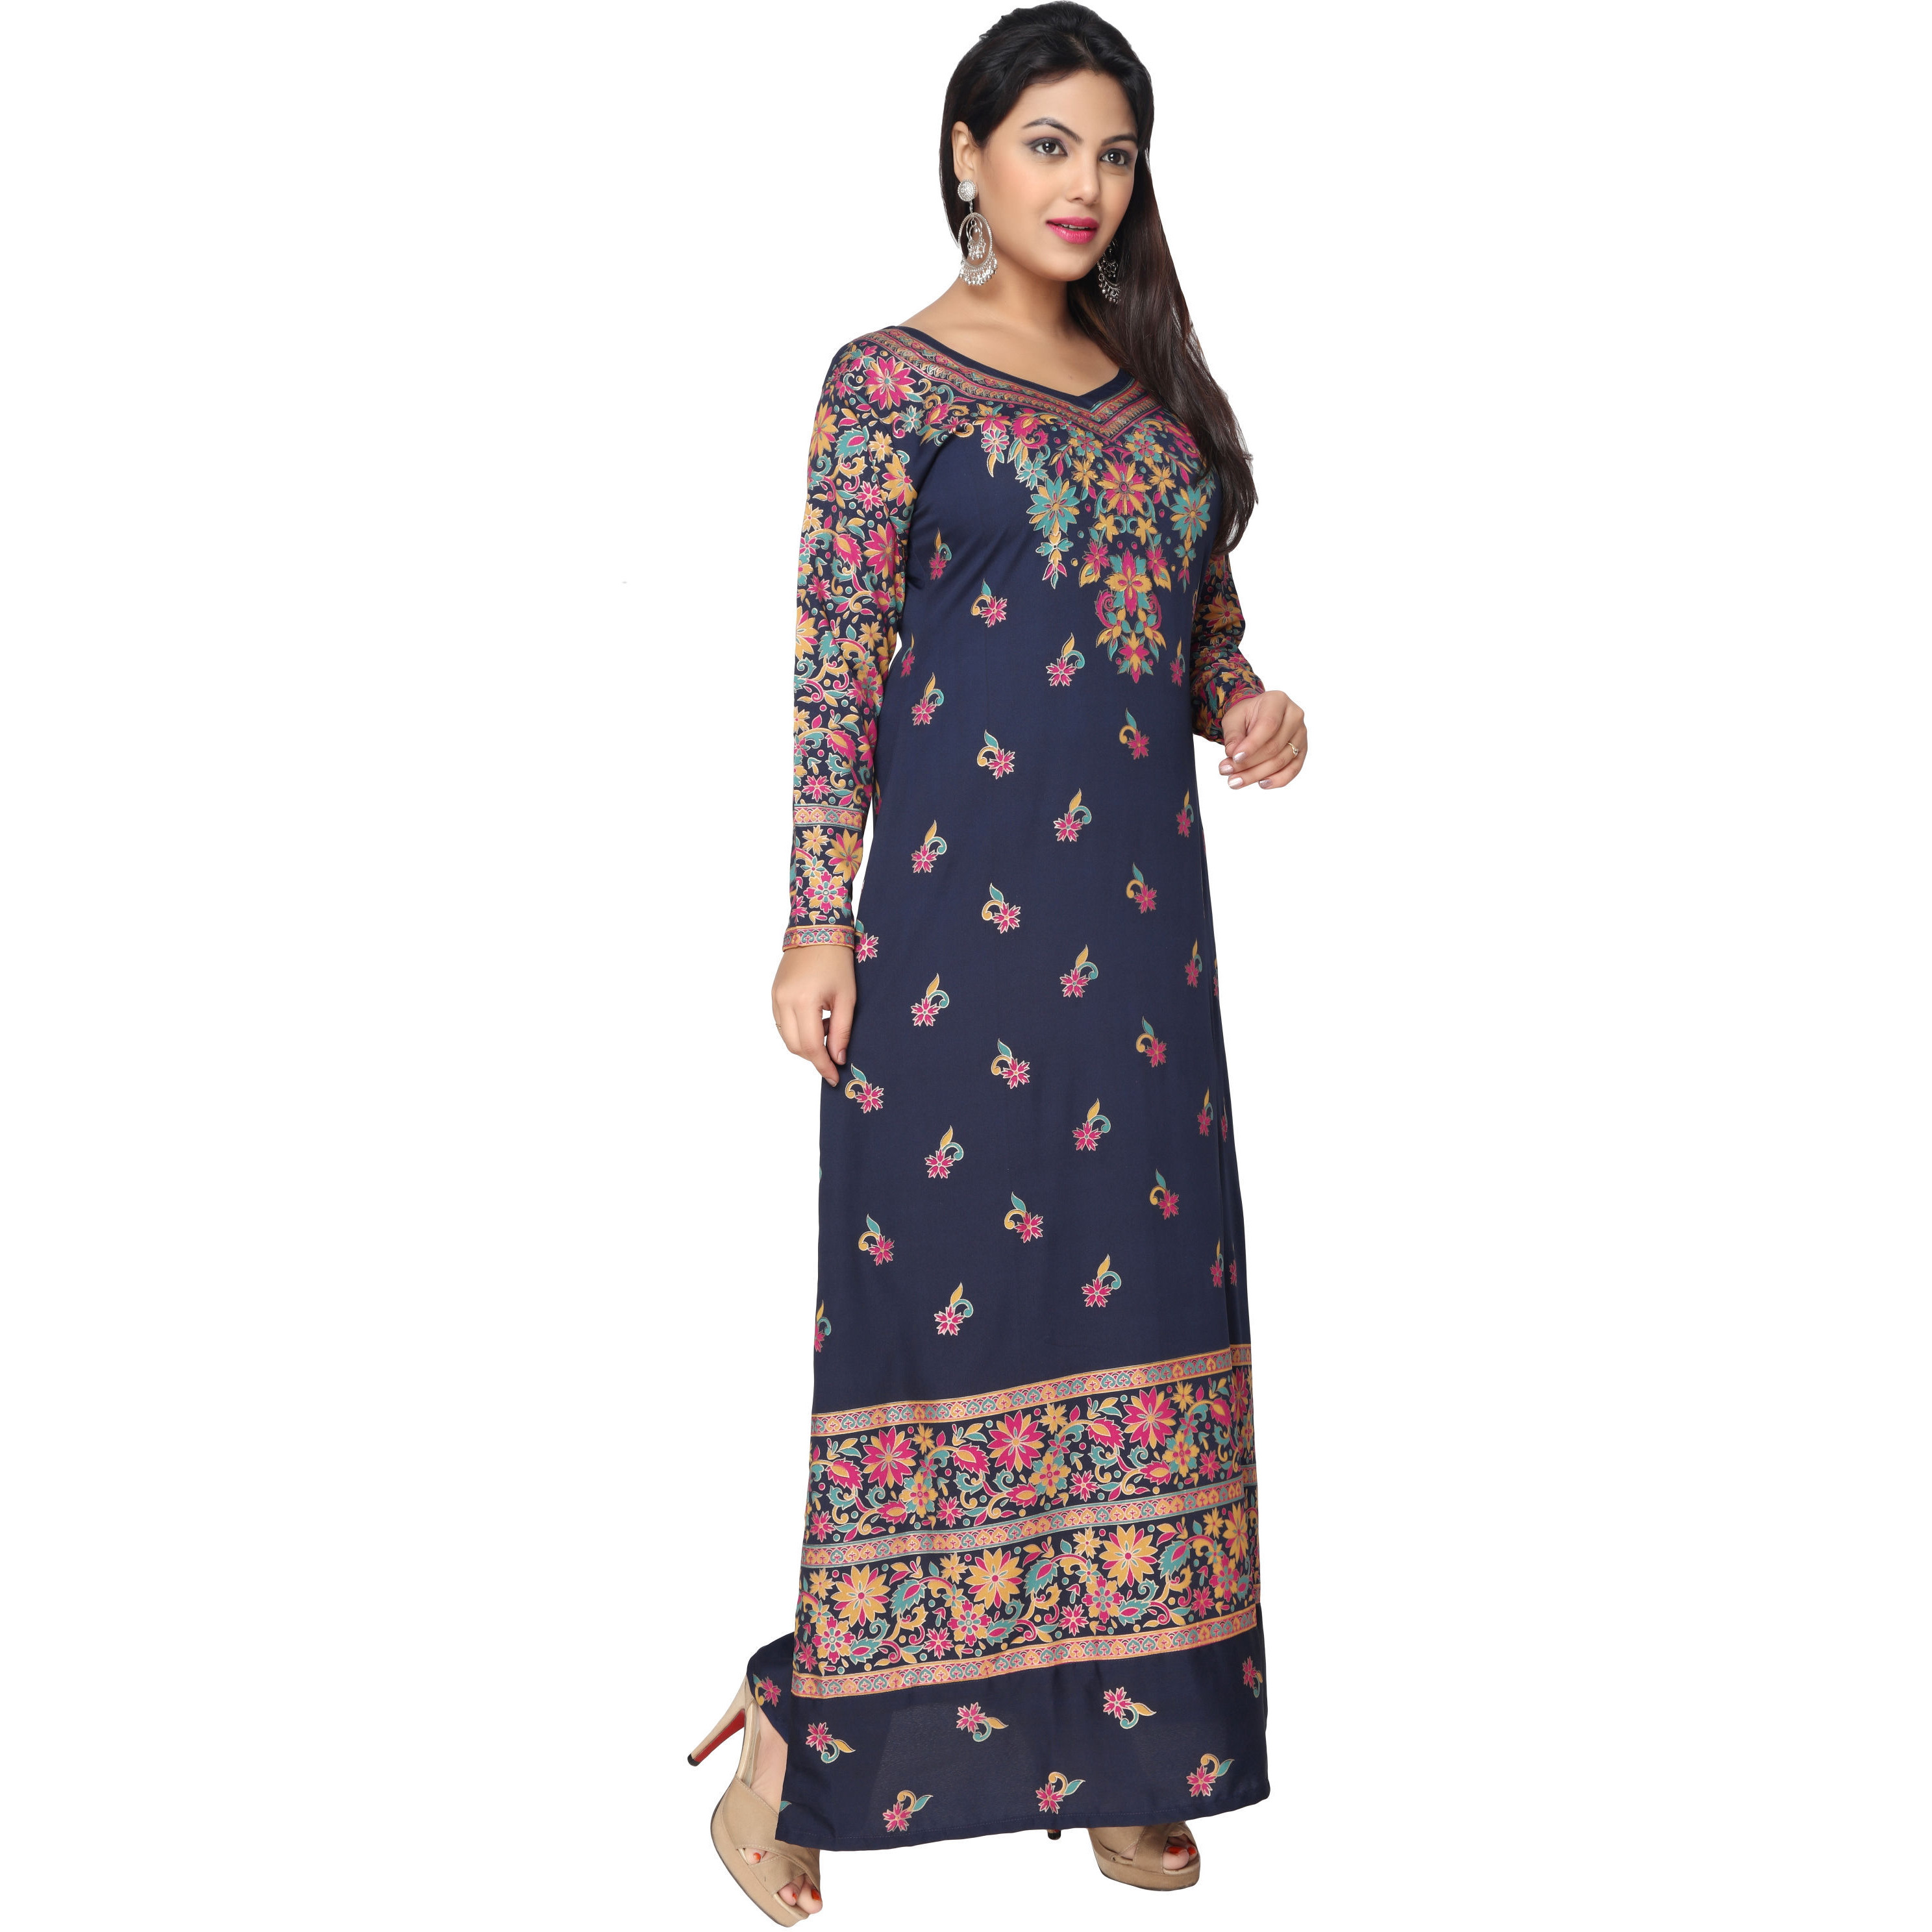 TrendyFashionMall Gold Print Kaftans Maxi Dresses with design in Front and Back (Color:TFMKFT01052-BLUEMULTI, Size:52 - 6X-PLUS)